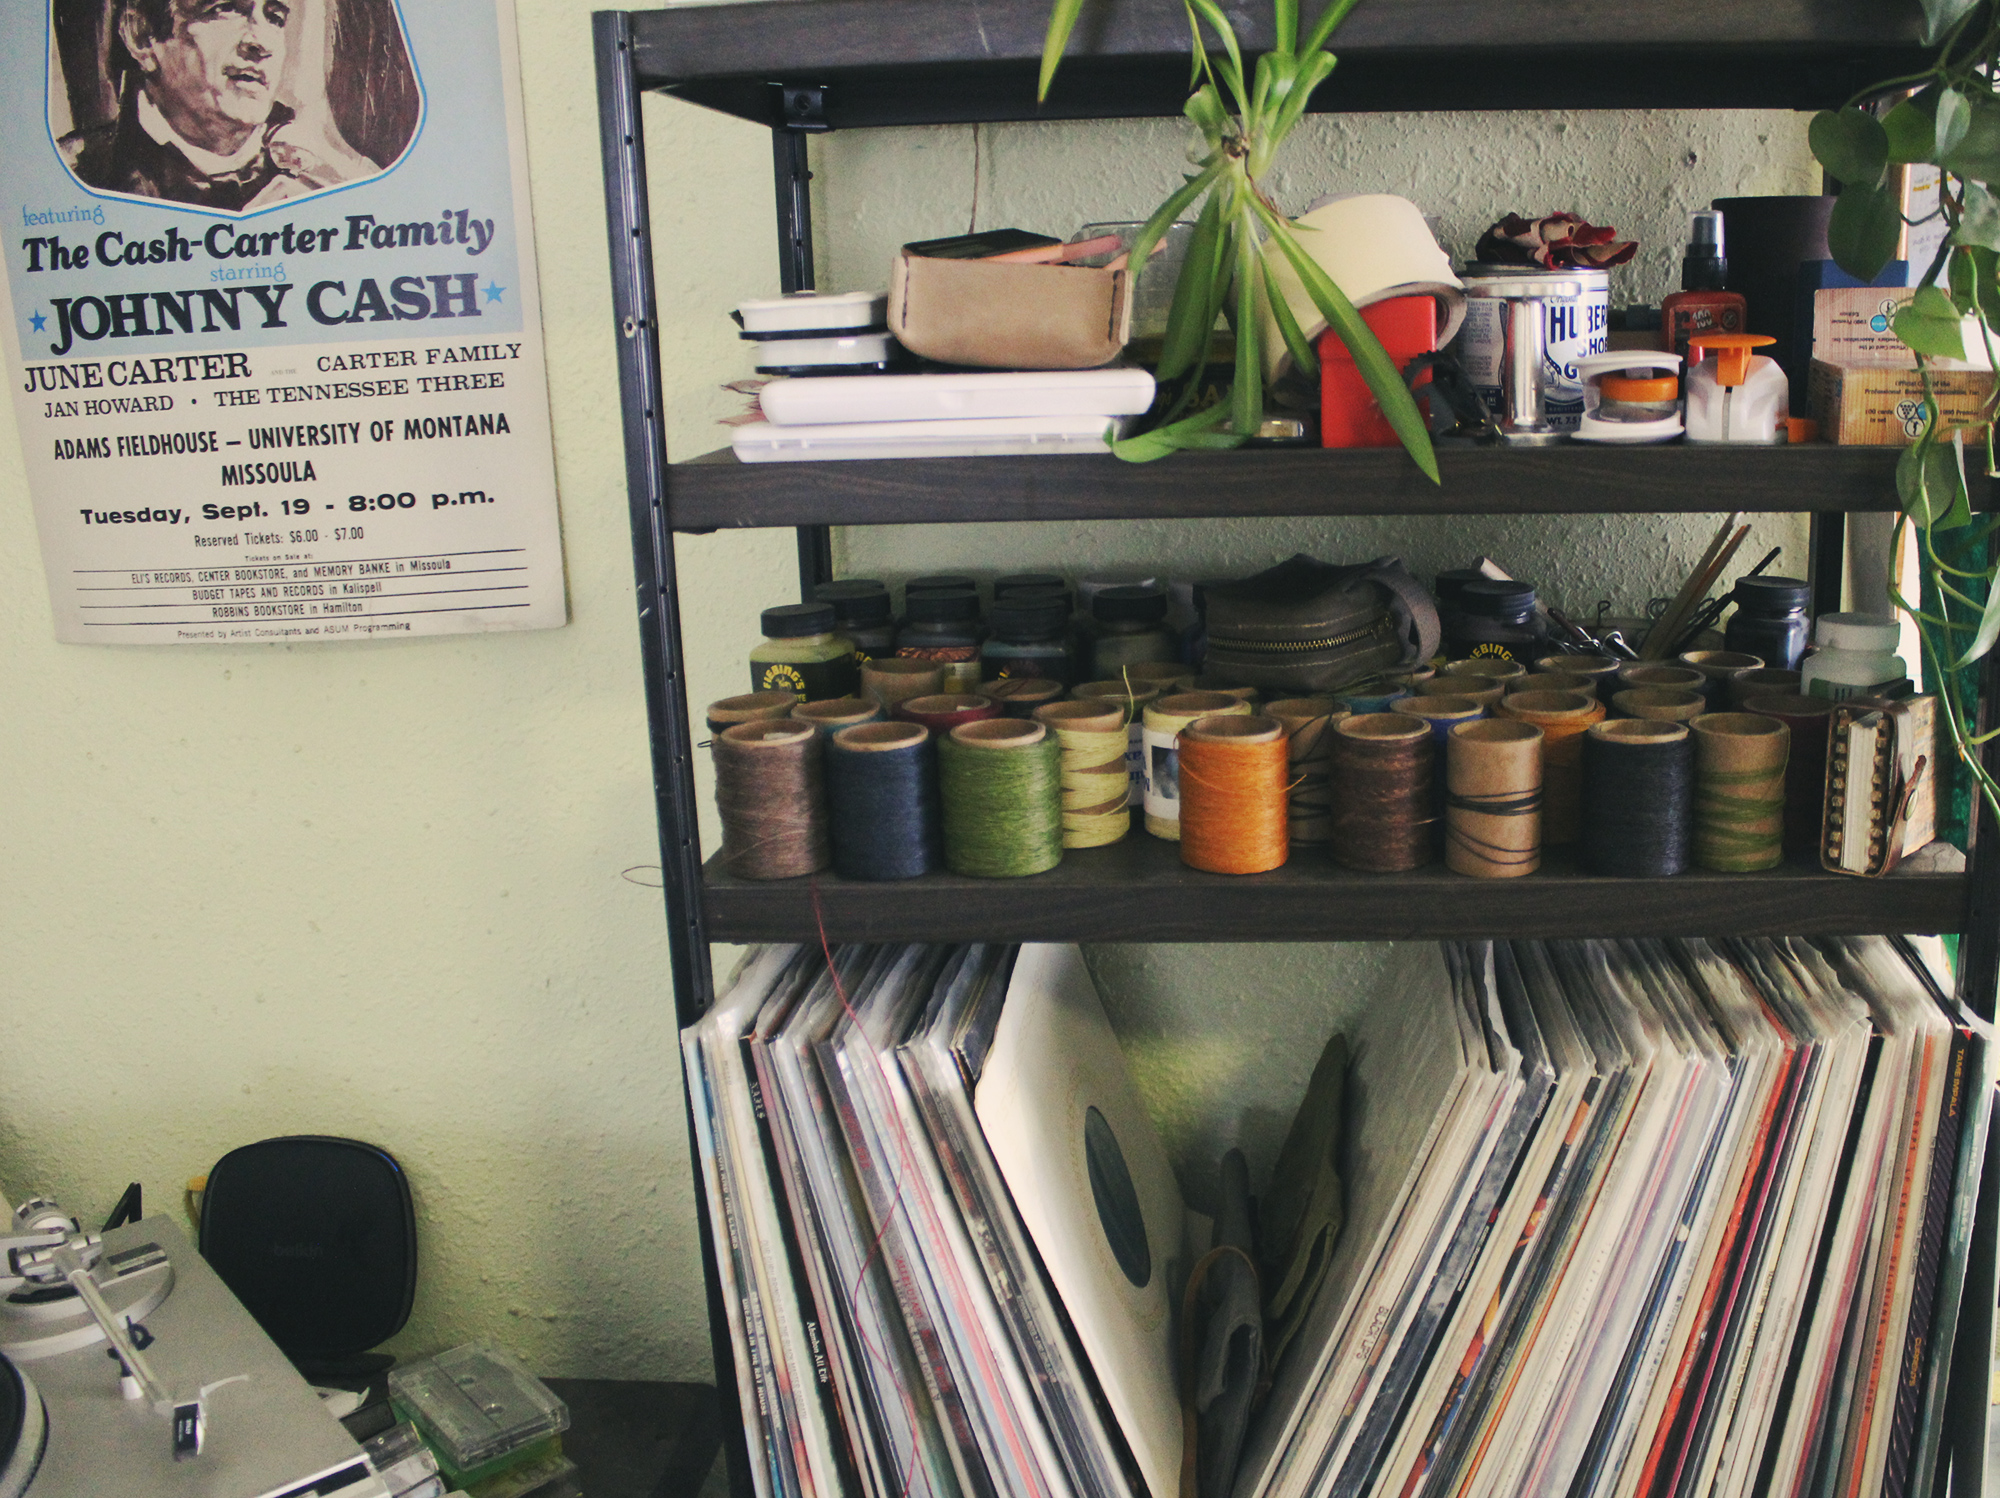 Vinyl records and waxed thread on a shelf